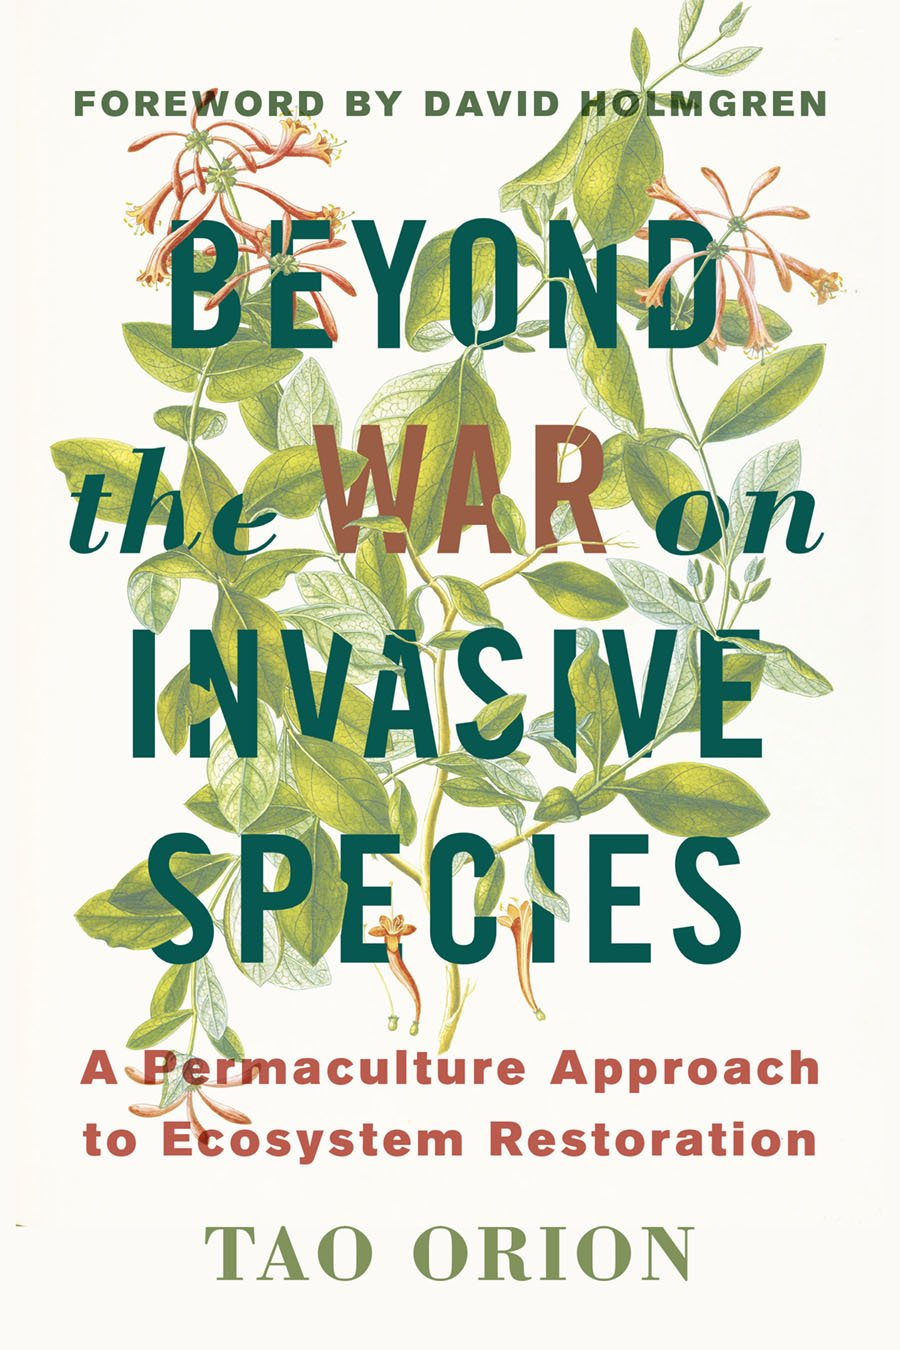 Beyond the War on Invasive Species: A Permaculture Approach to Ecosystem  Restoration: Tao Orion, David Holmgren: 9781603585637: Amazon.com: Books